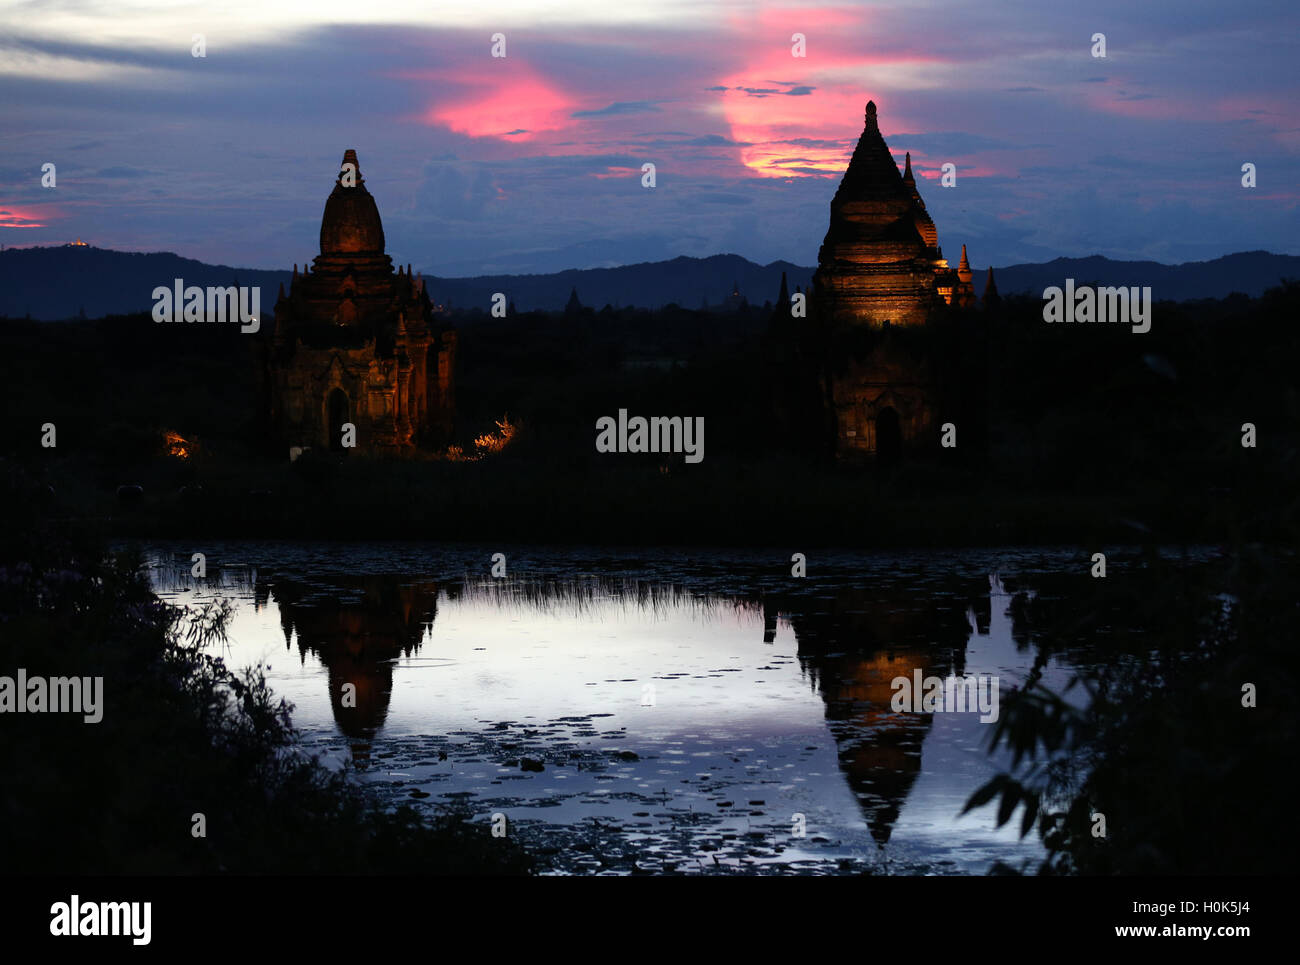 (160922) -- BAGAN (MYANMAR), Sept. 22, 2016 (Xinhua) -- Pagodas are seen in the ancient city of Bagan, Myanmar, - Stock Image